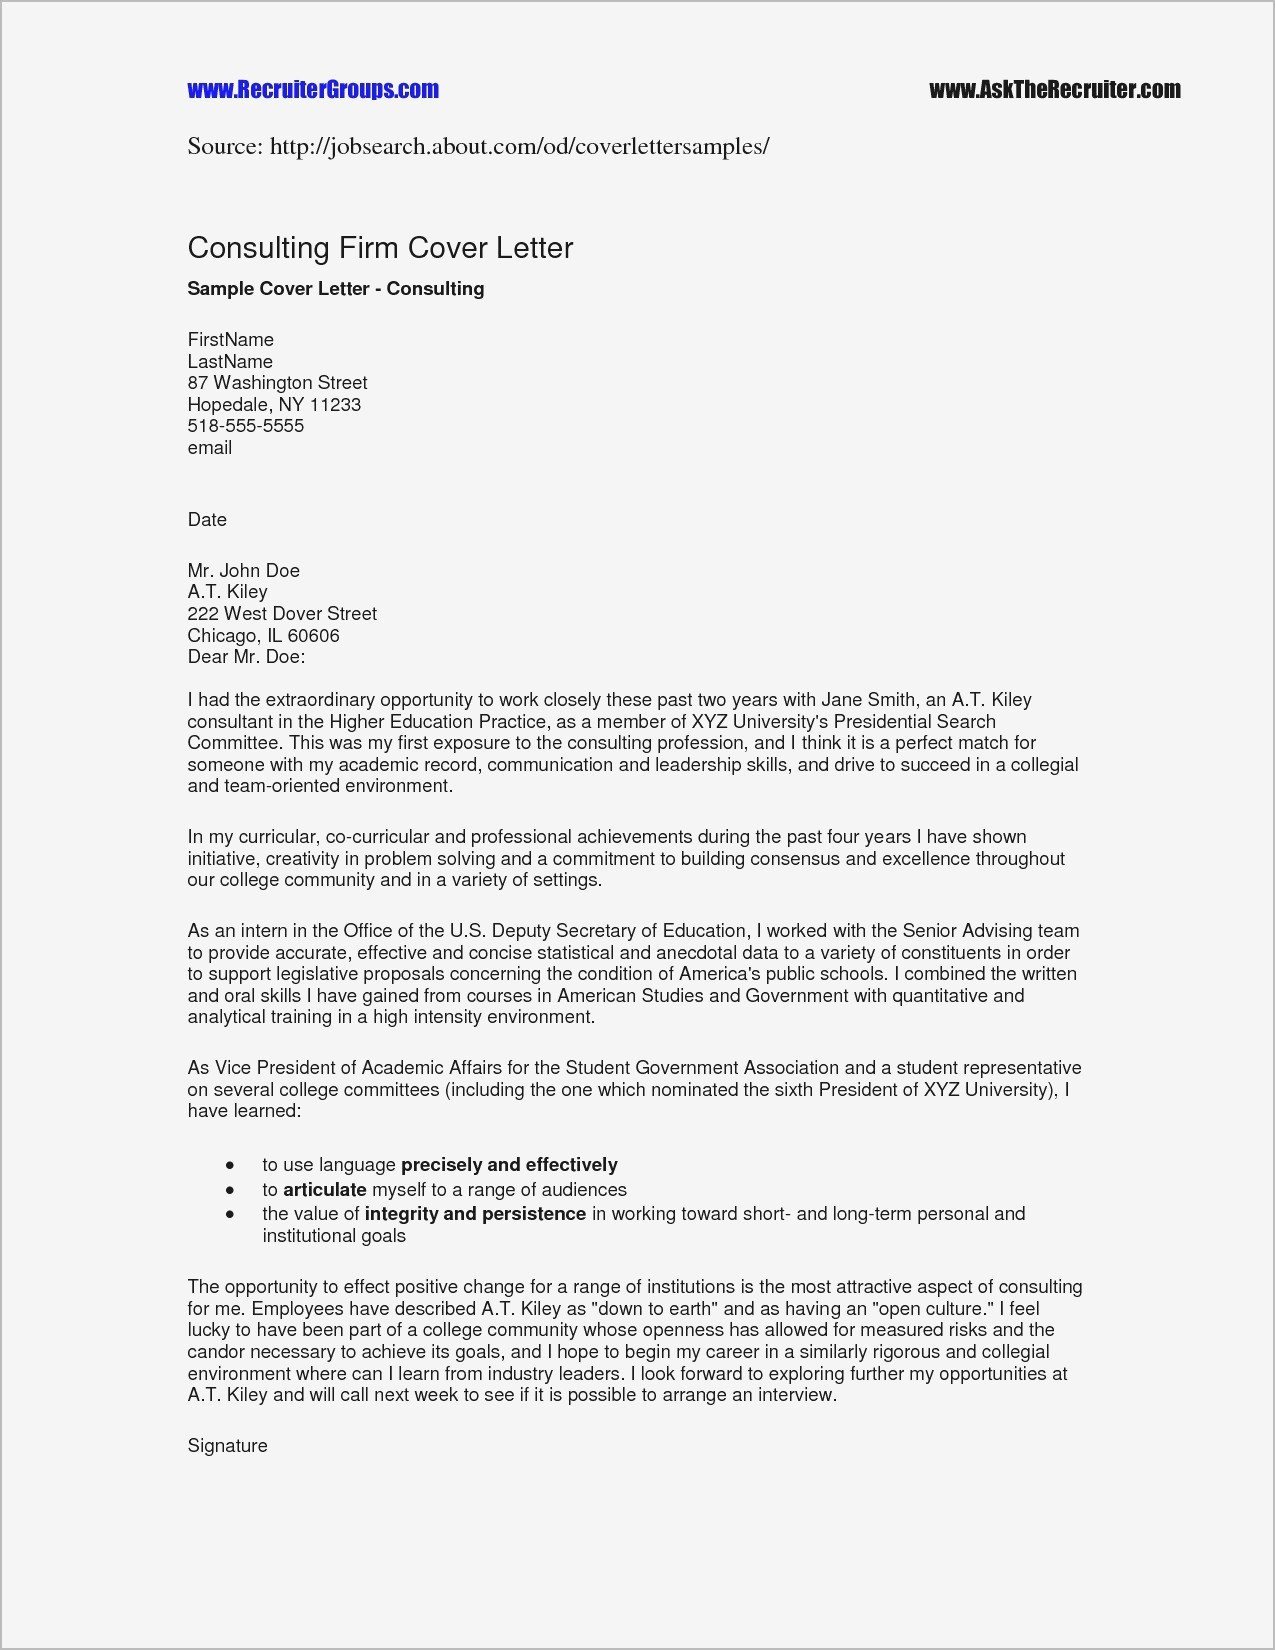 Professional Business Letter format Template - Business Letter format Template Word Valid Microsoft Word Business